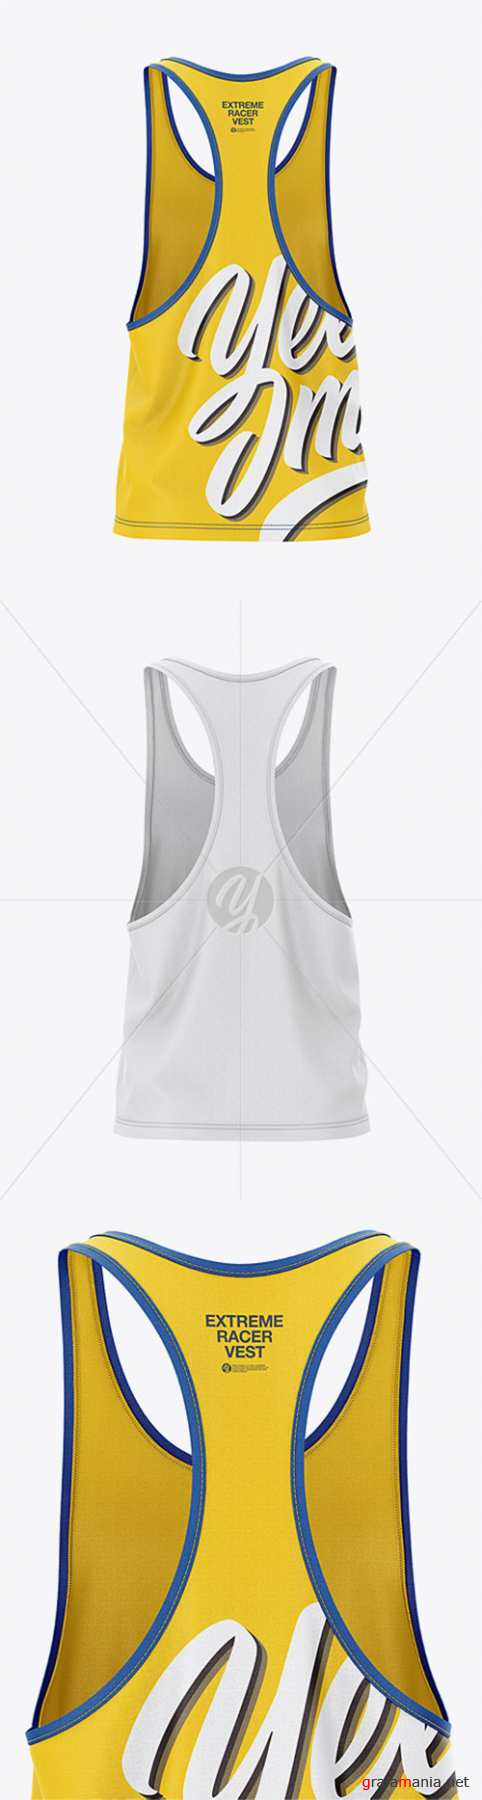 Men's Racer-Back Tank Top Mockup - Back View 31475